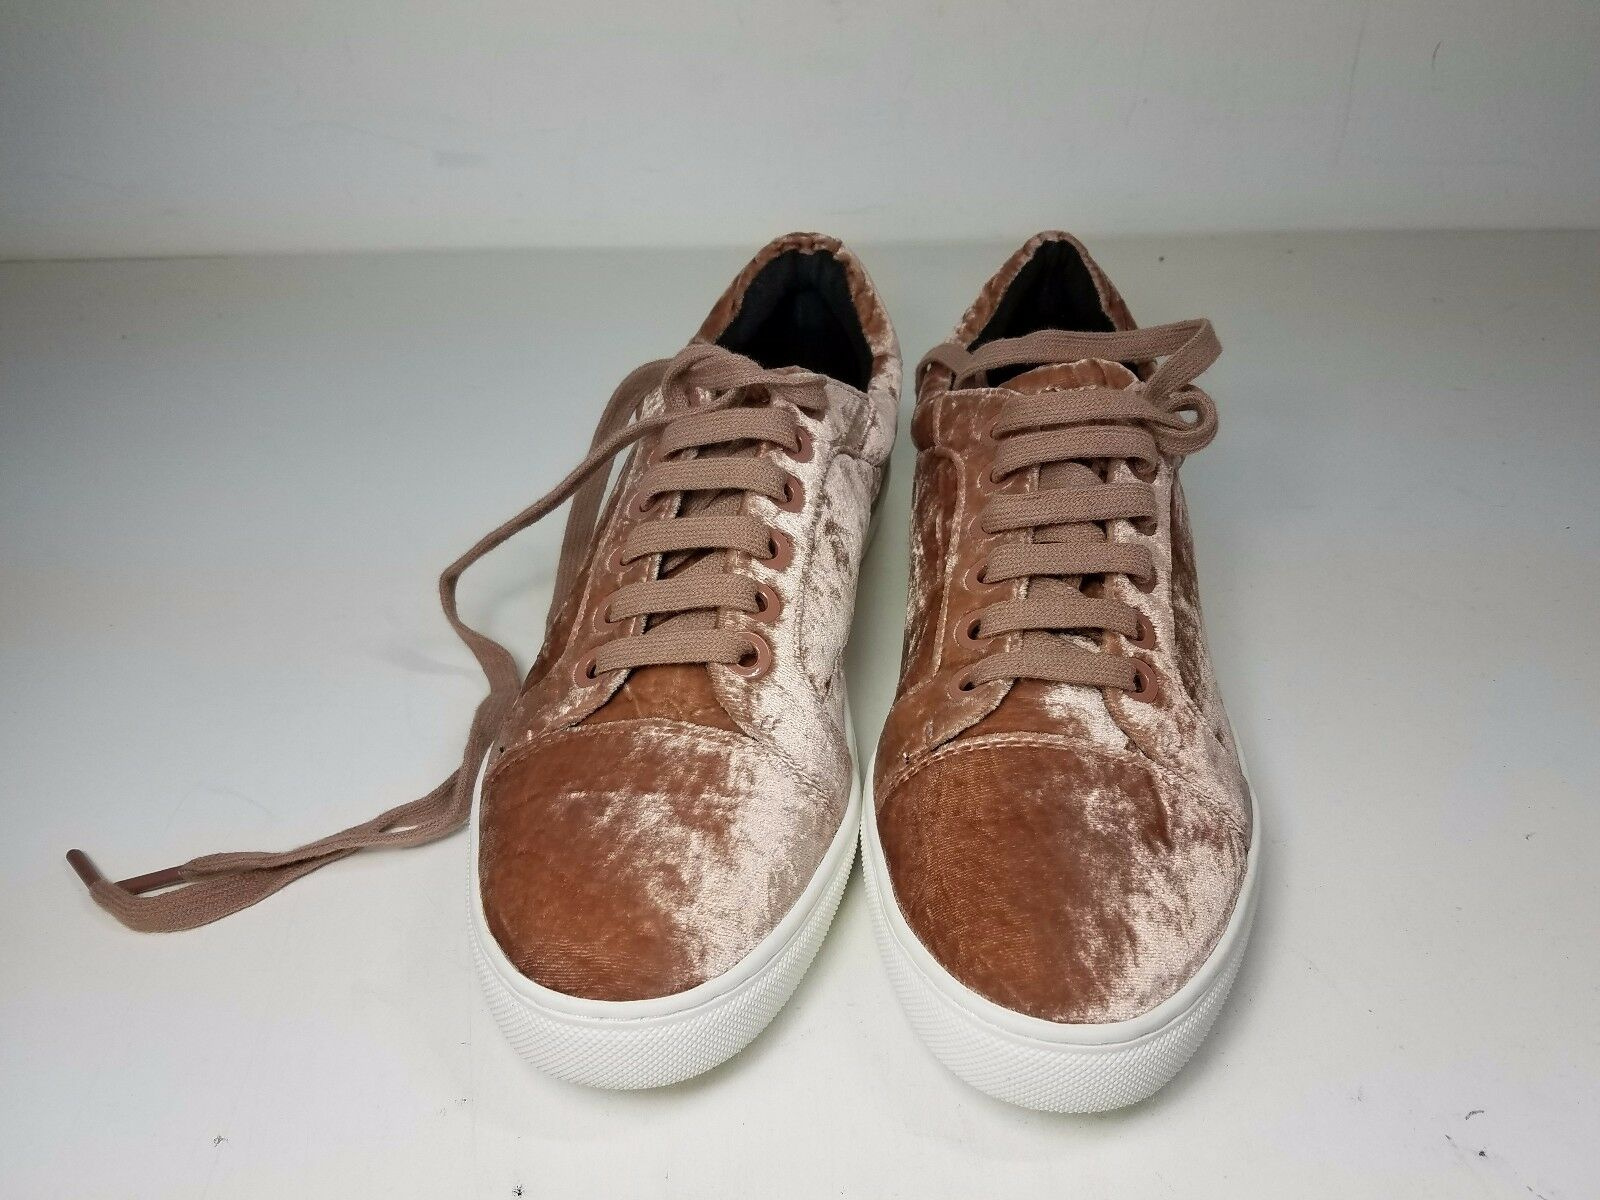 150 size 9.5 Rebecca Minkoff Minkoff Minkoff Bleecker Too Velvet Berry Smoothie Sneakers shoes 5fd6e6